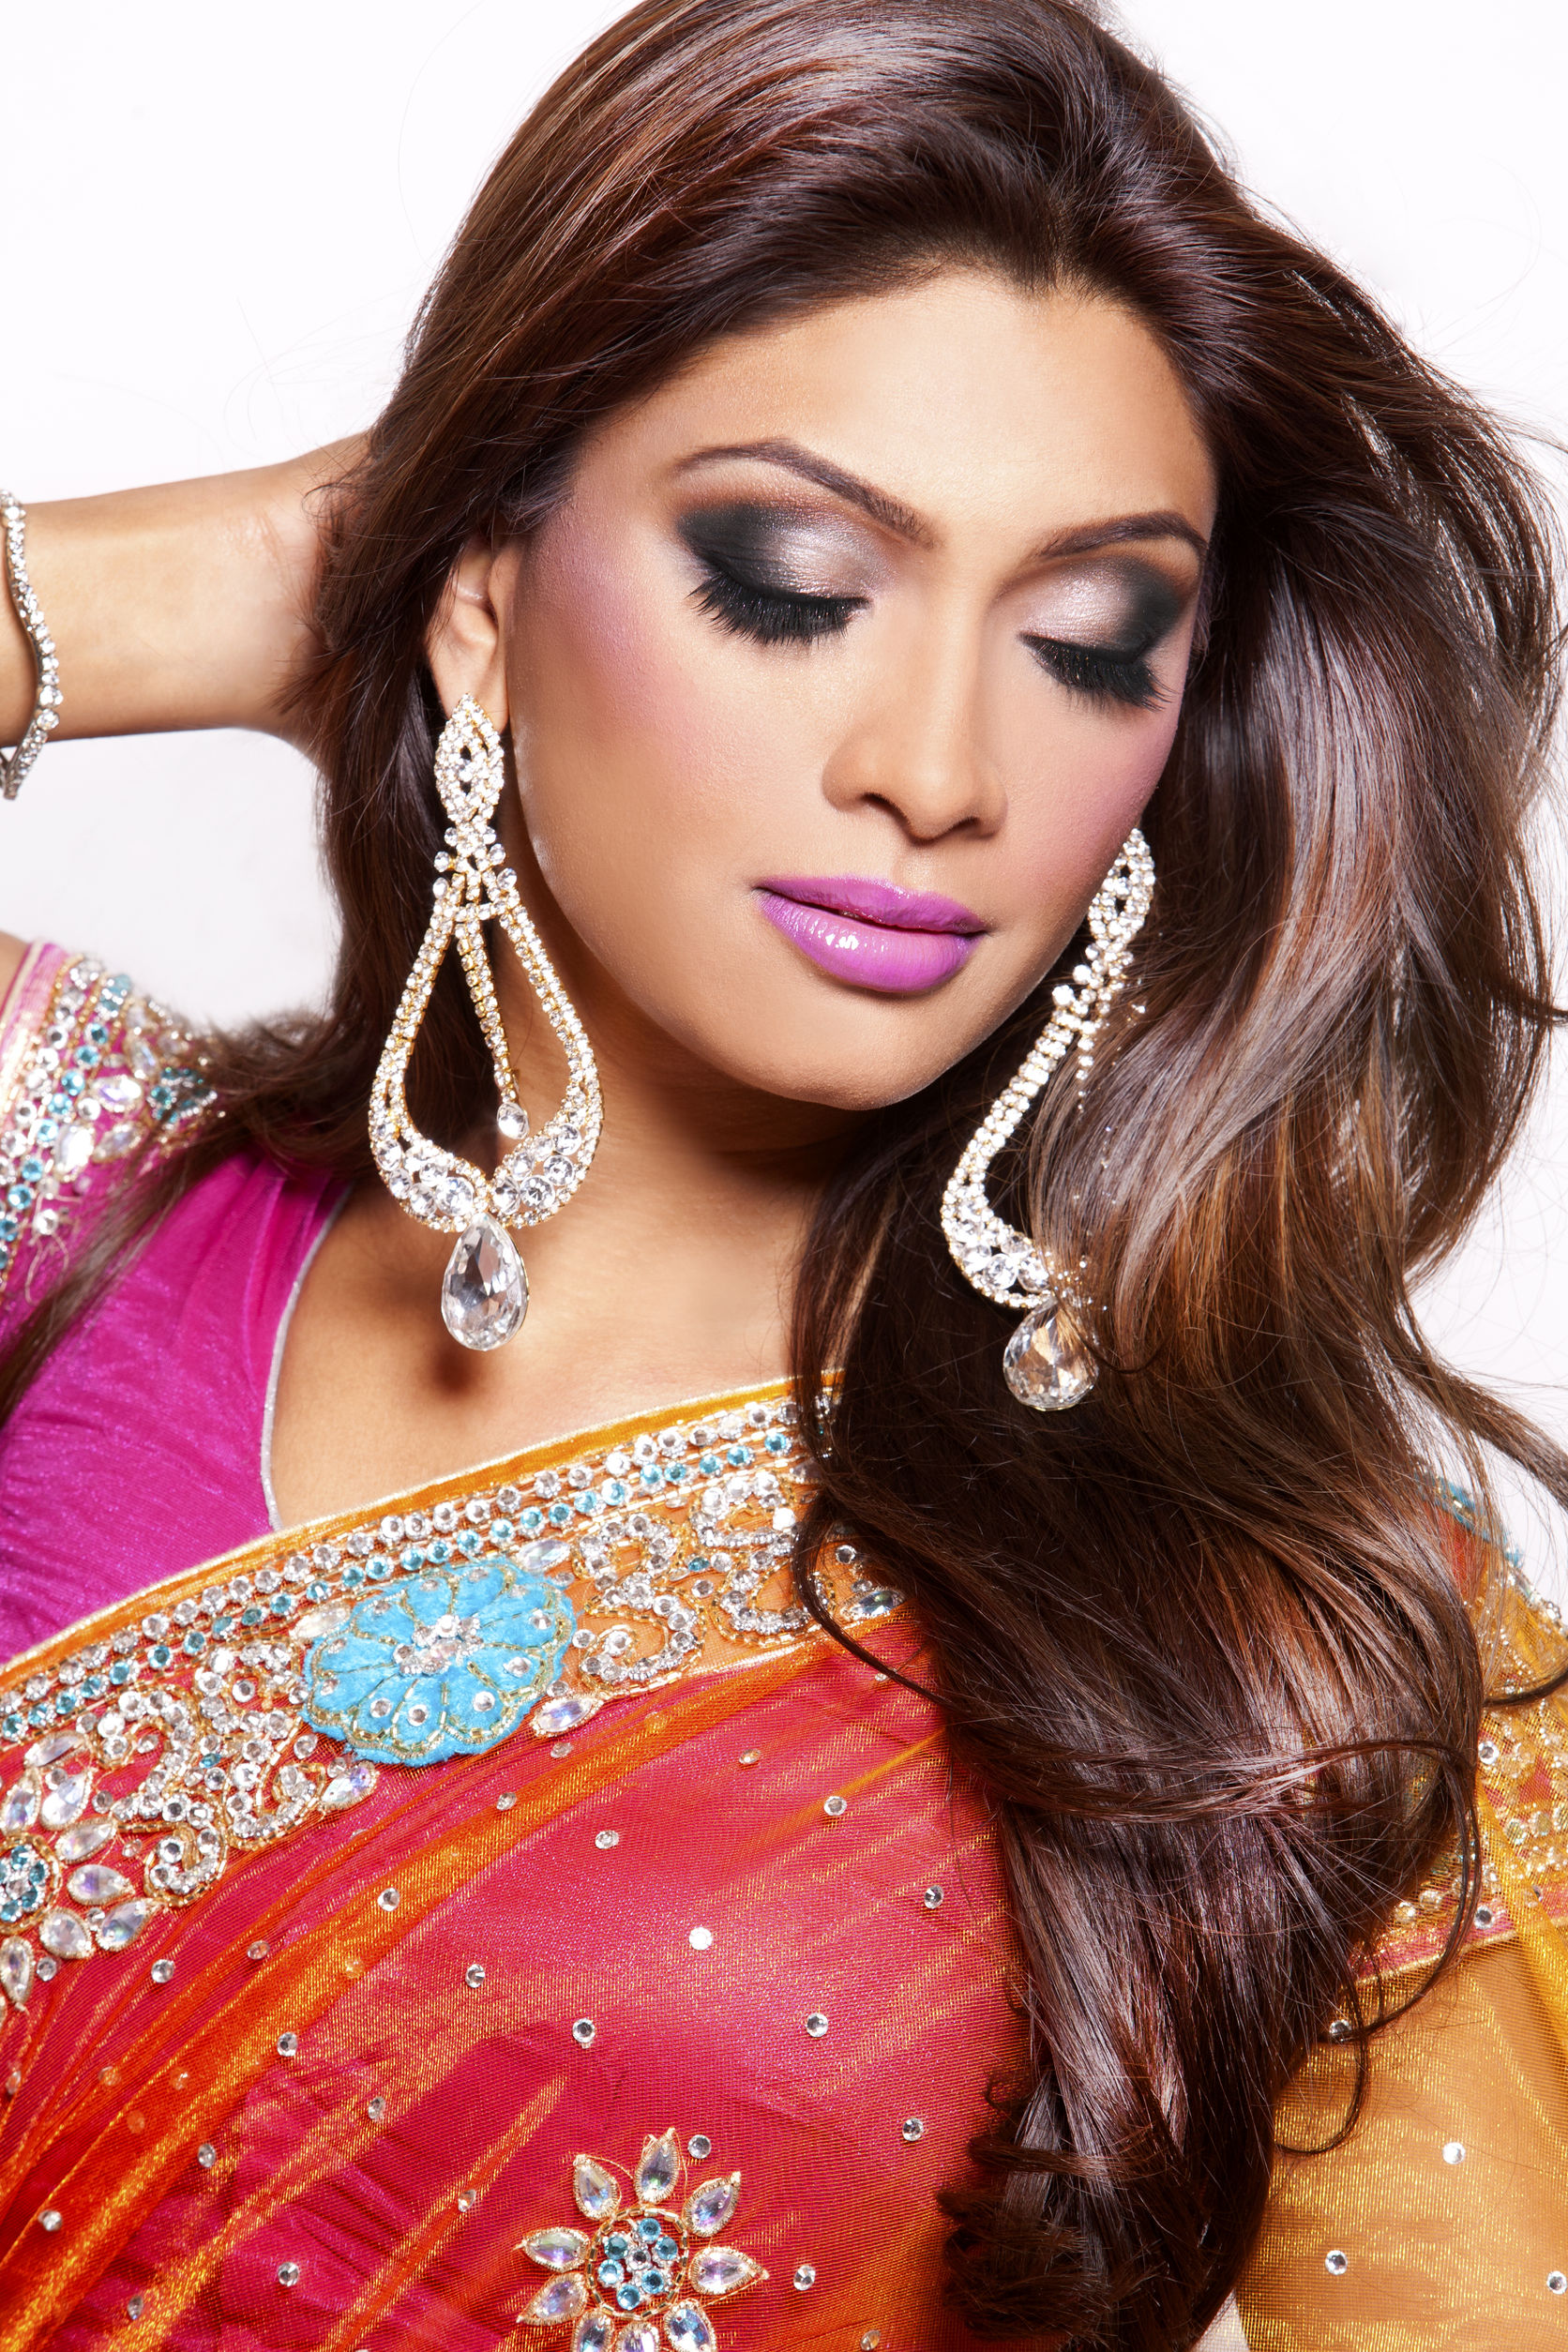 Makeup Tips For A Perfect Diwali Look